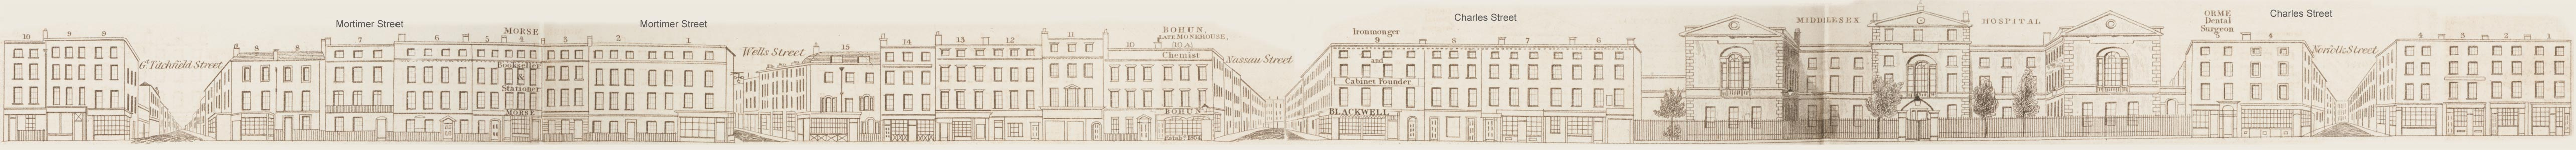 map - Tallis's London street views : No. 65. Charles Street and Mortimer Street (north)